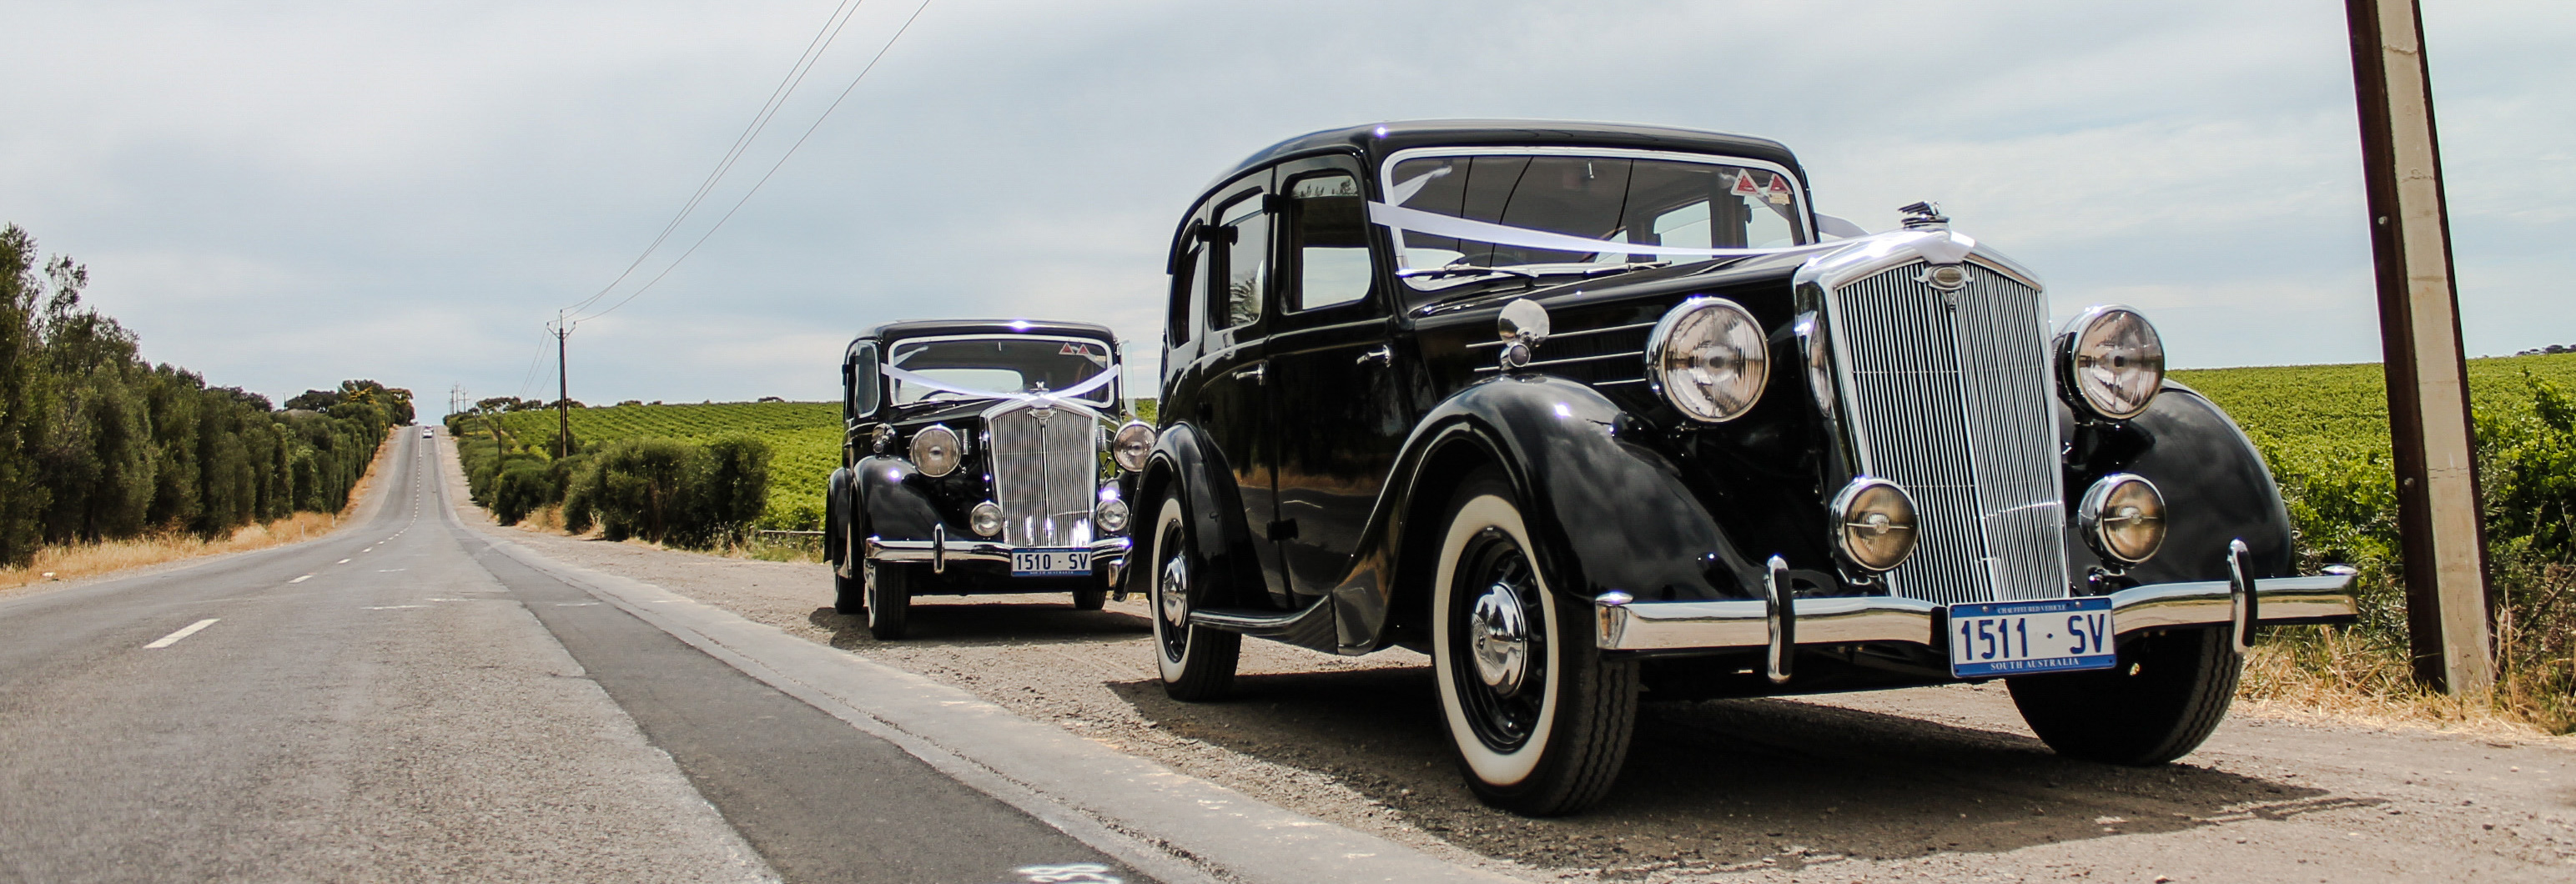 wolseley wedding cars Adelaide front view